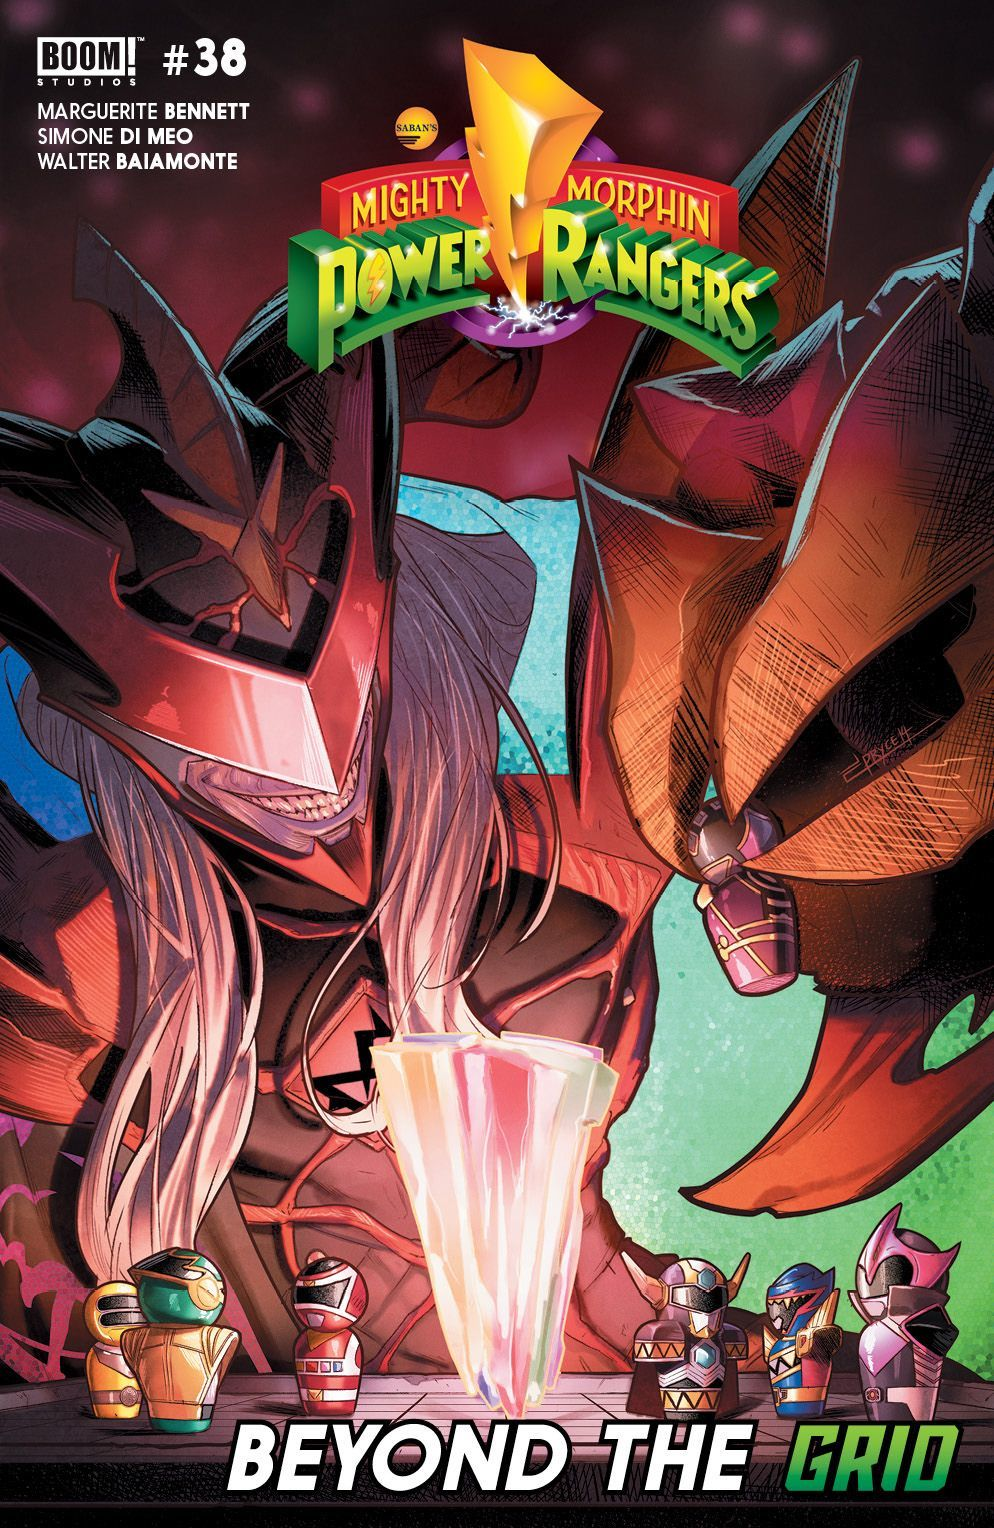 Mighty-Morphin-Power-Rangers-38-Preview-1